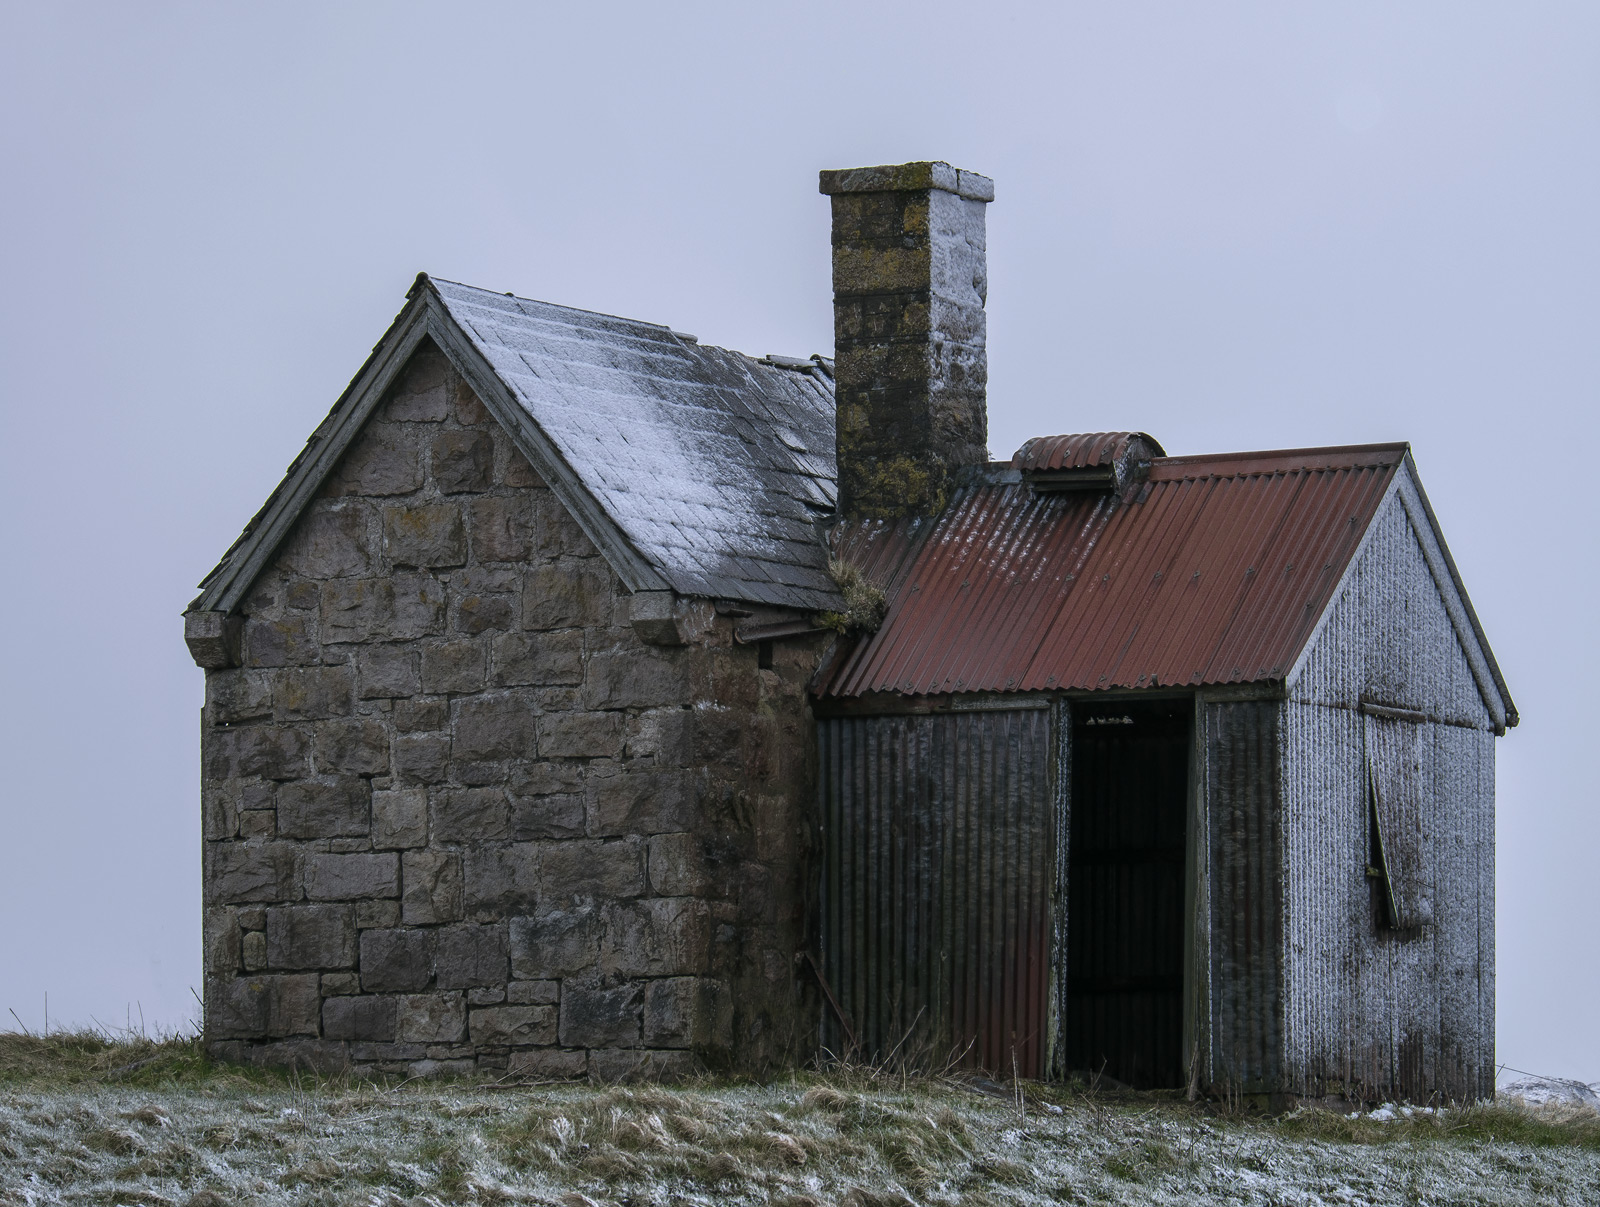 The cold twilight and winter grey sky make a compelling cold contrast to the warmth of that rusty red roof on that delightful...